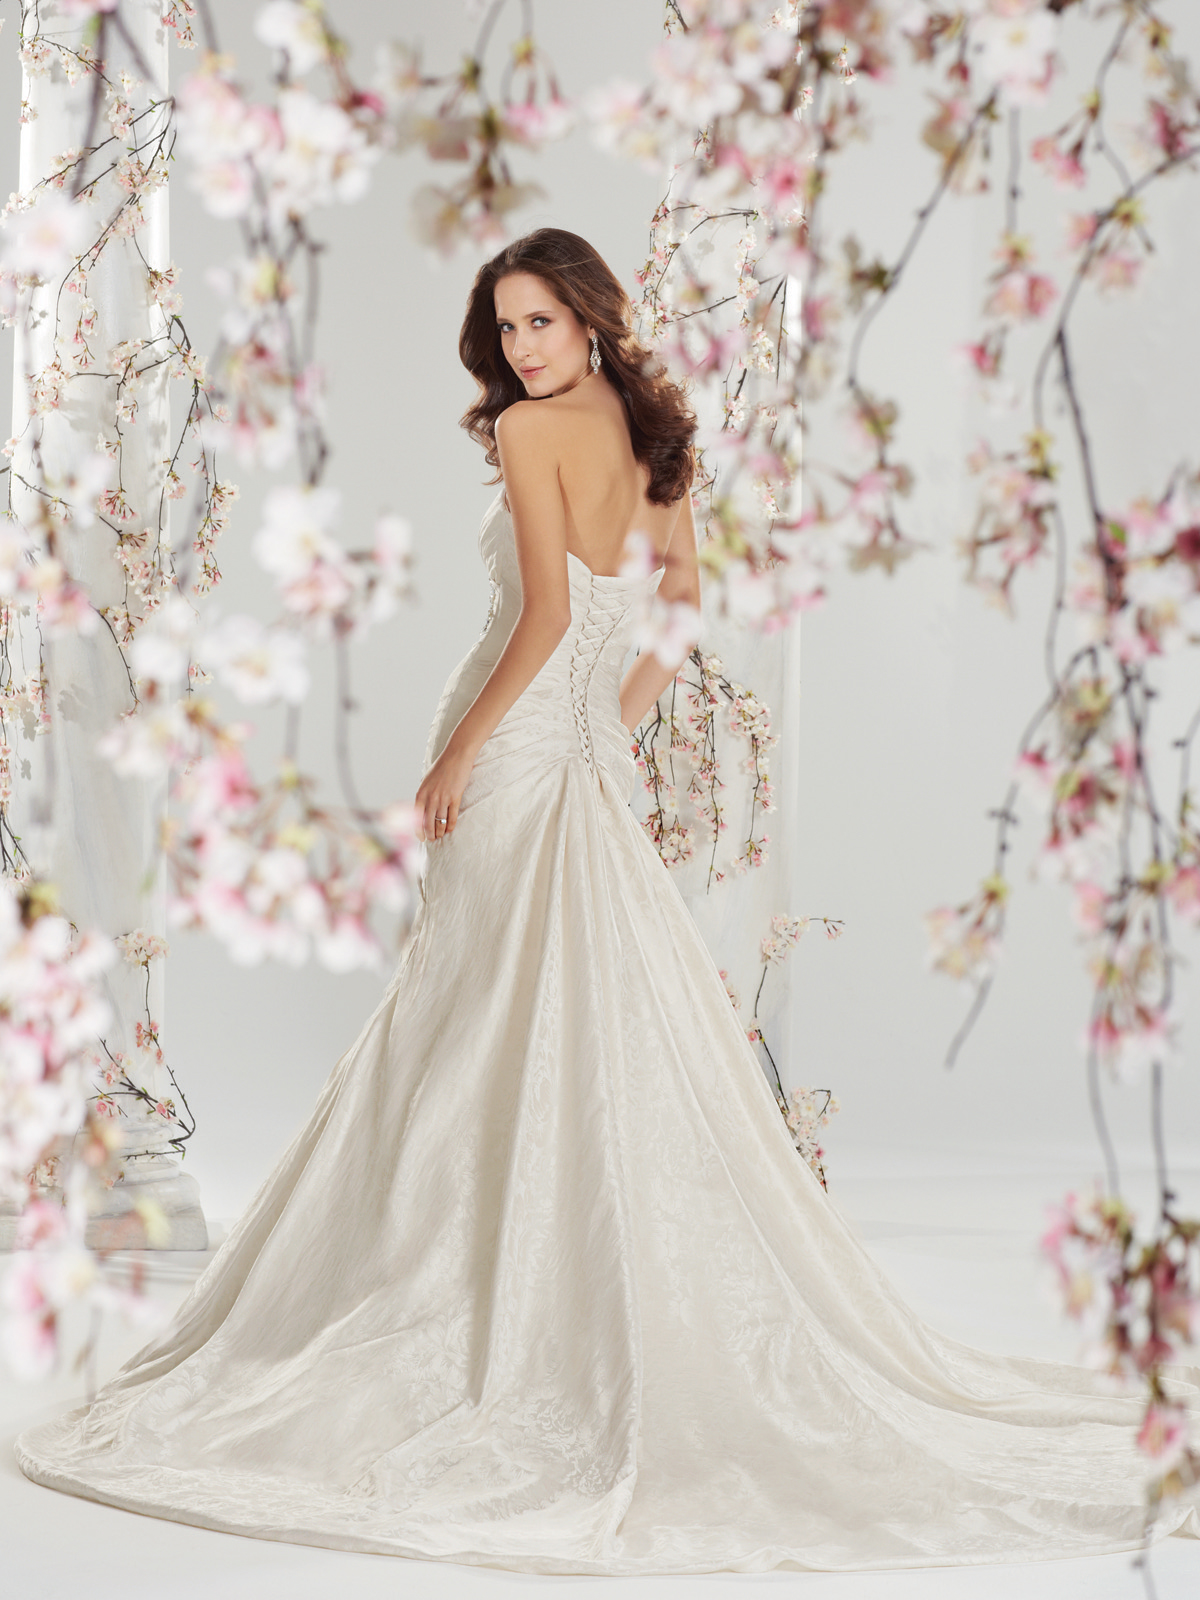 The Best Wedding Dress Designers Part 10